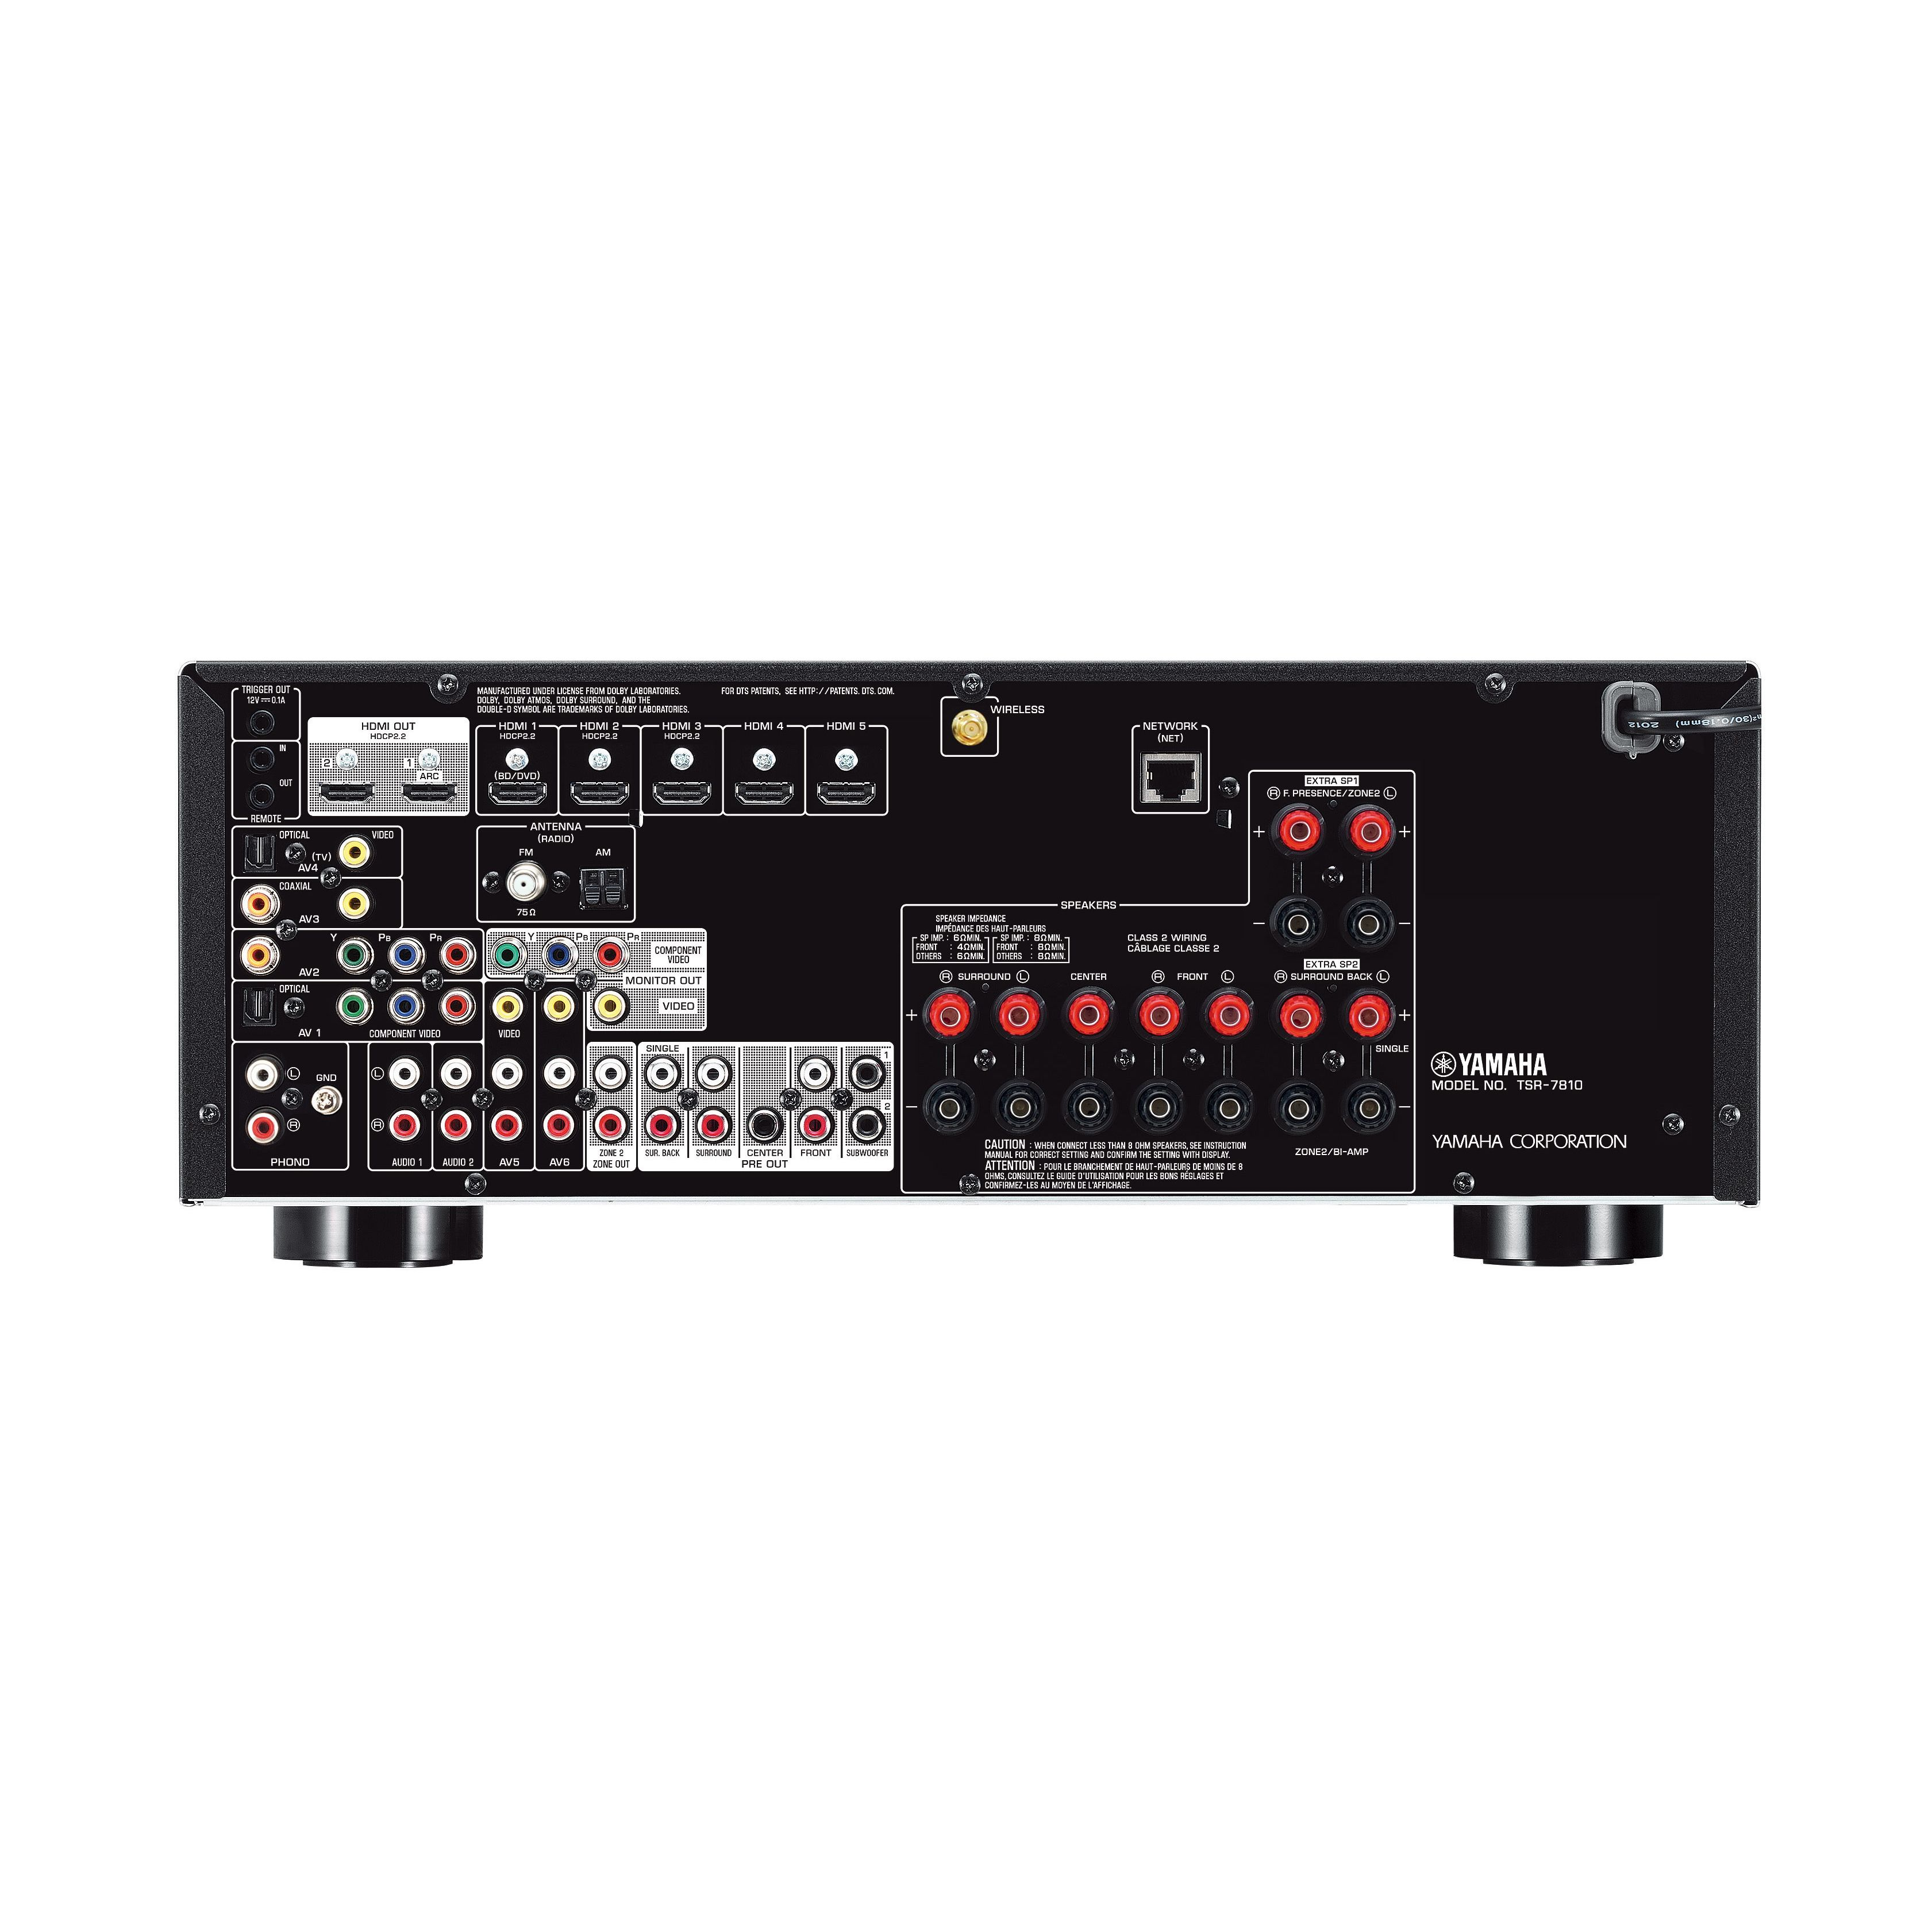 TSR-7810 - Features - AV Receivers - Audio & Visual - Products